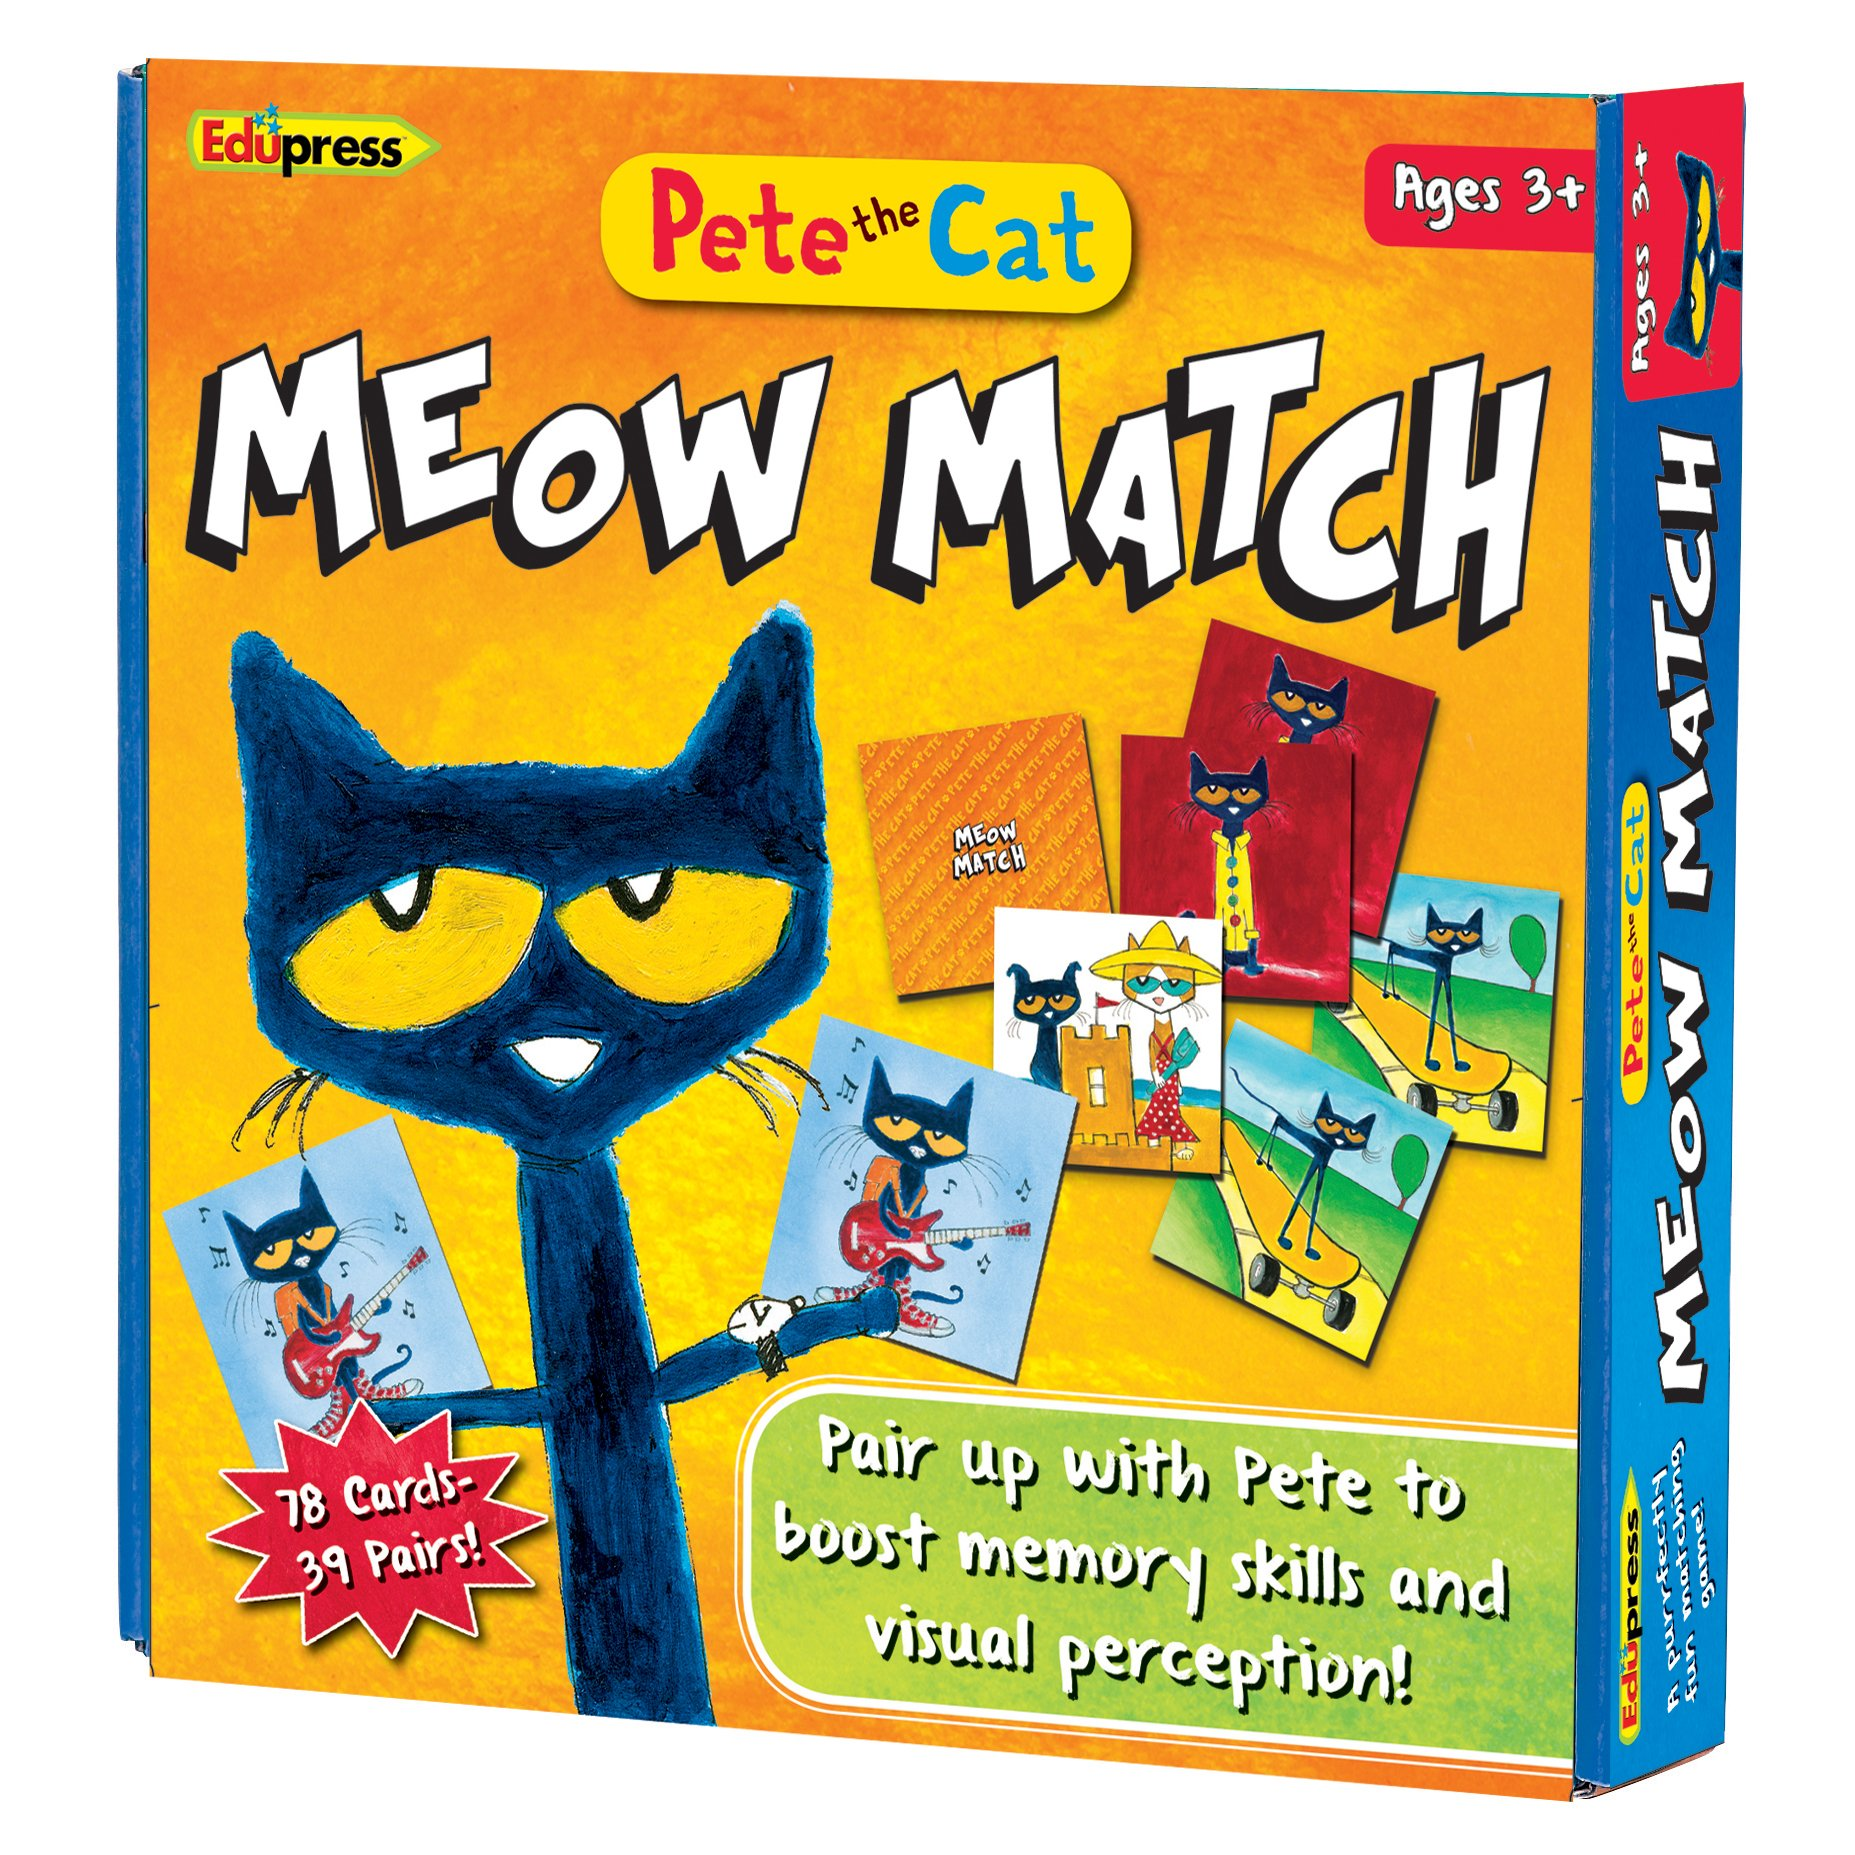 Edupress Pete the Cat Meow Match Game - 62075